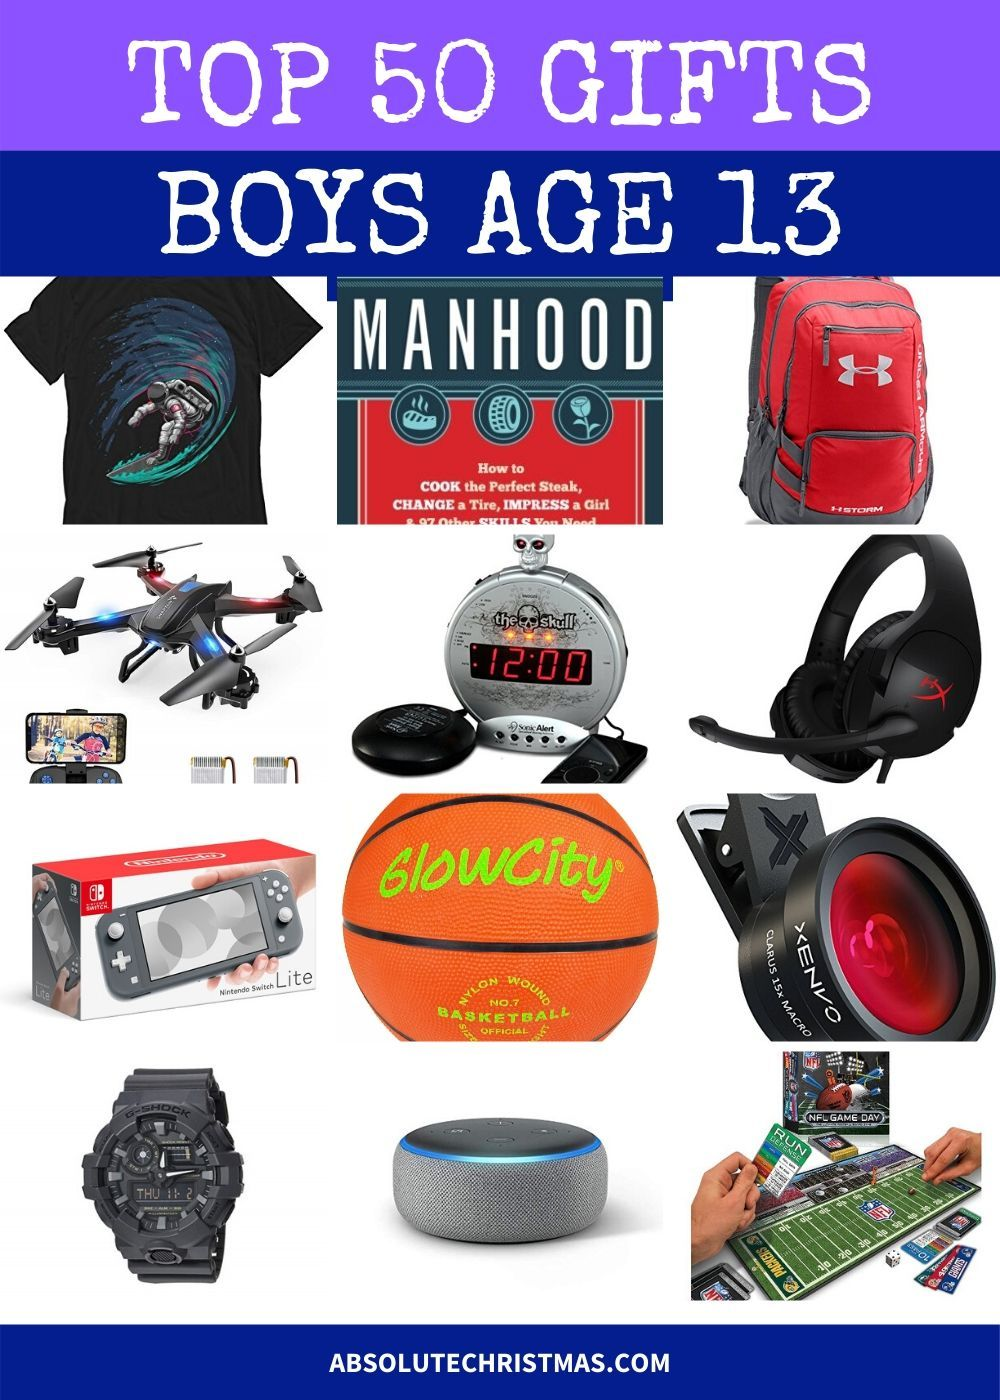 Best Gifts For 13 Year Old Boys 2020 13 Year Old Boys 13 Year Old Christmas Gifts Gifts For Boys